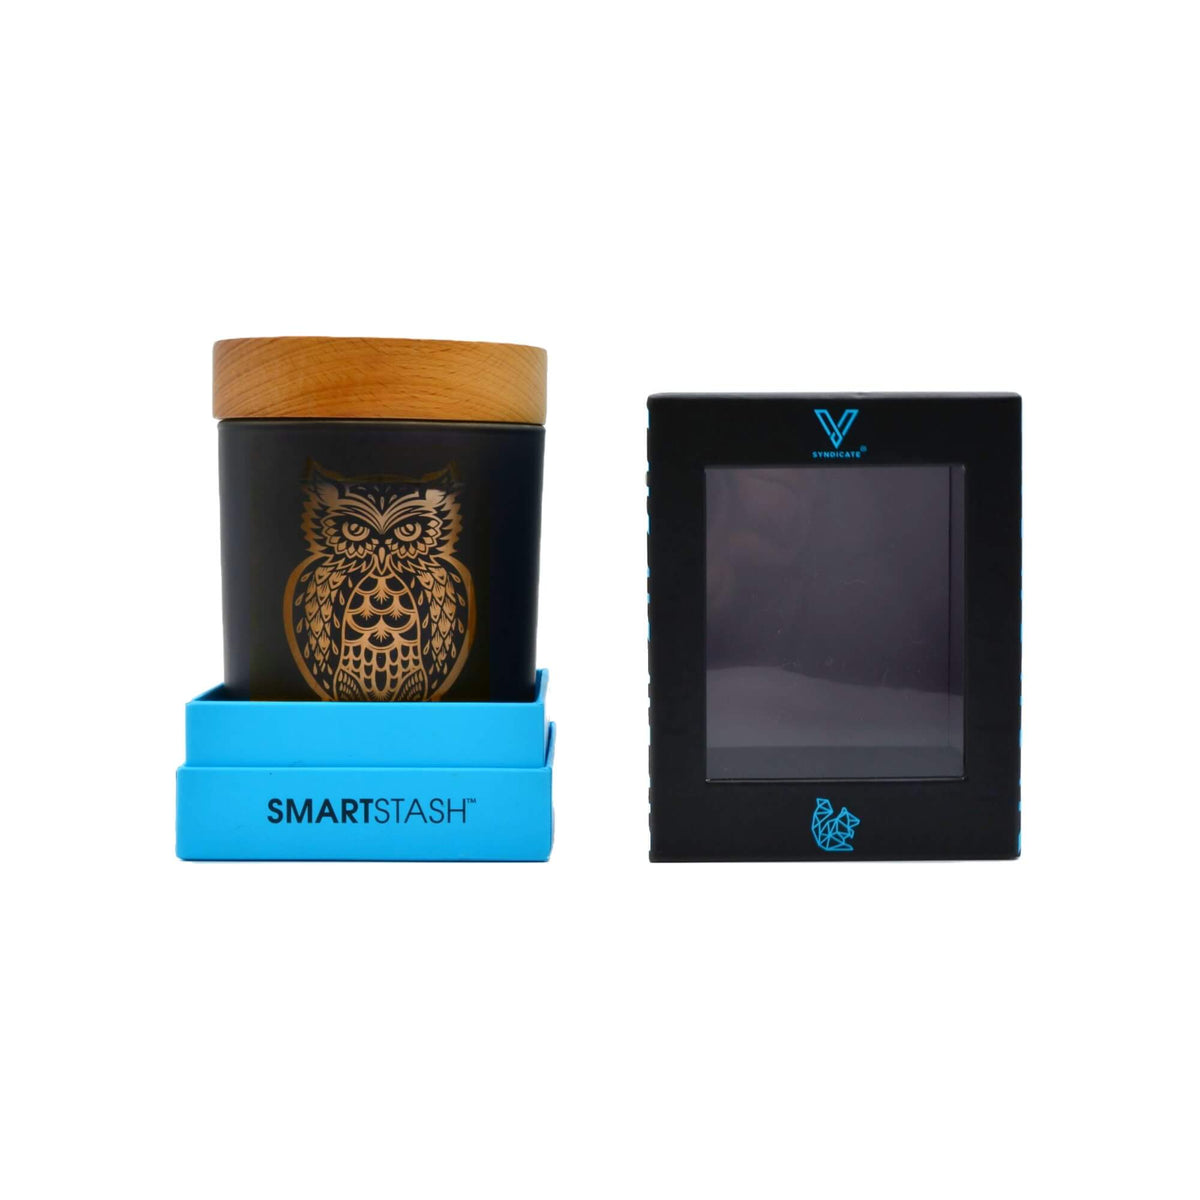 Owllusion Smart Stash Orange - V Syndicate